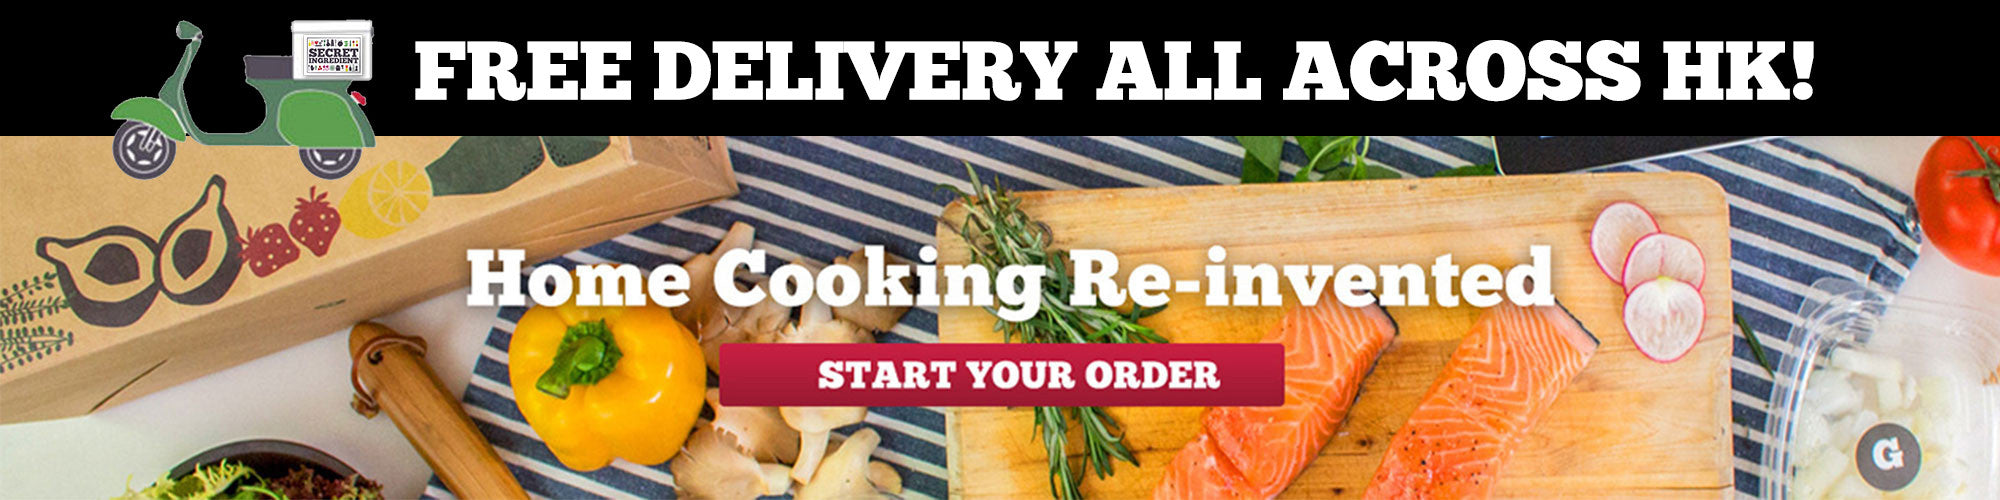 Food delivery hong kong meal delivery hong kong secret ingredient choose a recipe online and we deliver all the ingredients plus step by step instruction to home cook a delicious meal in less than 20 minutes forumfinder Gallery